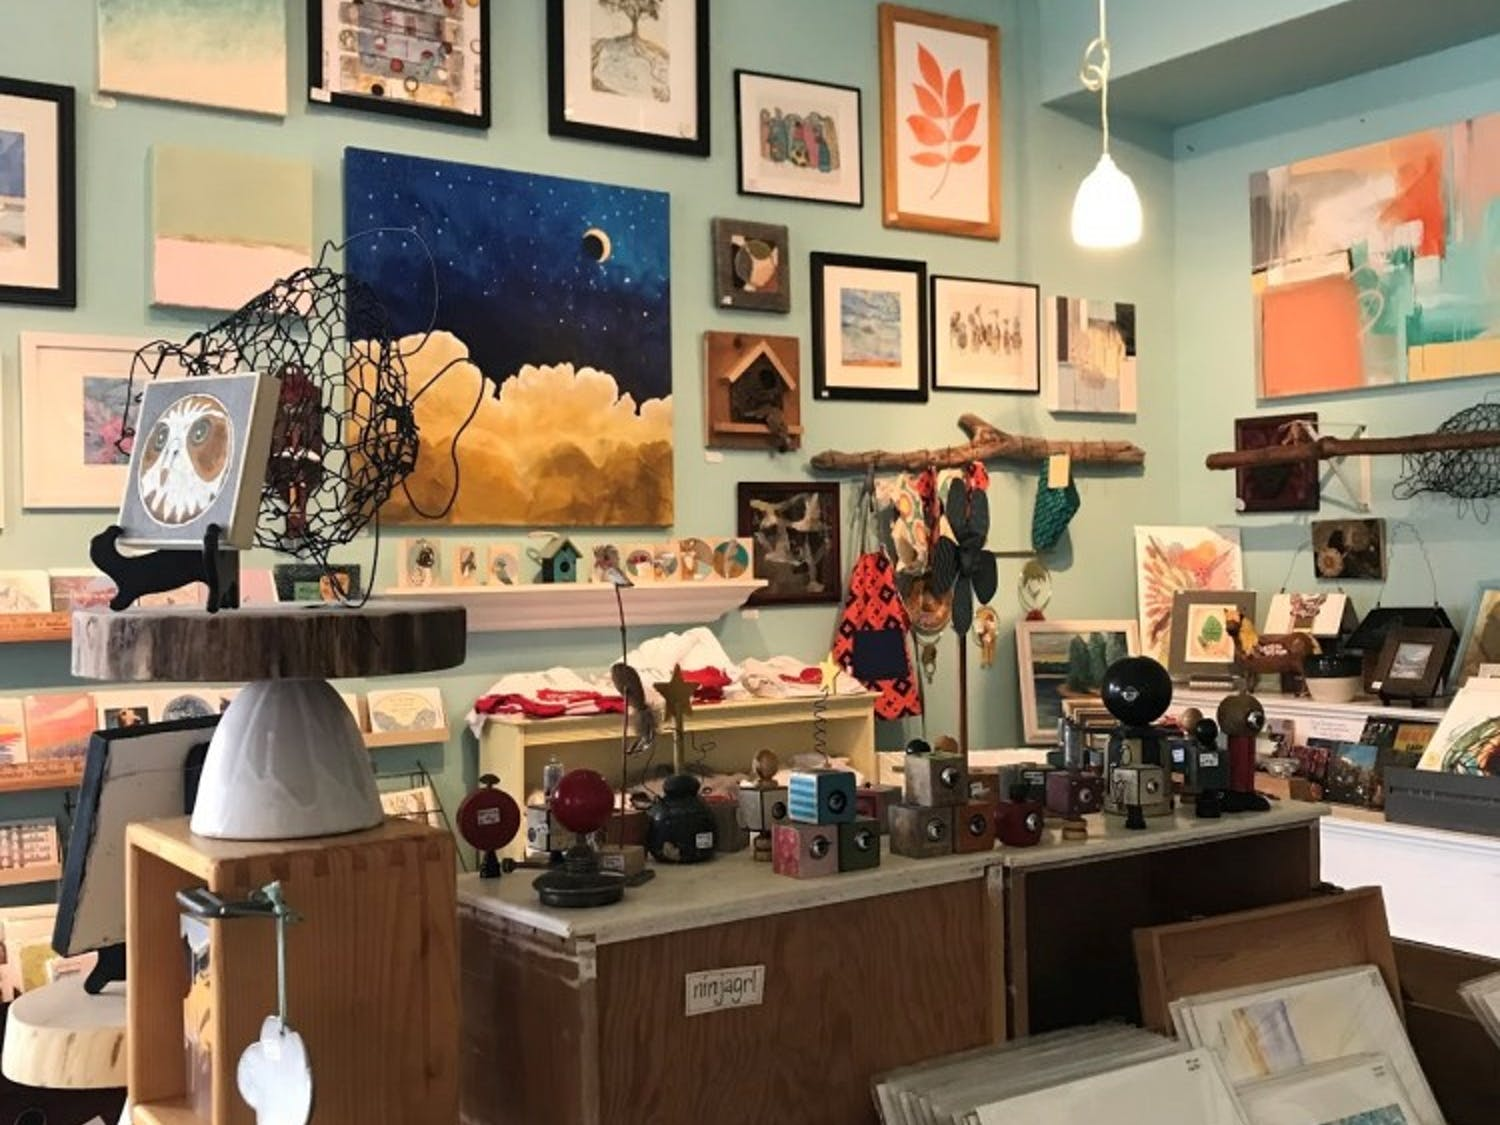 Hatch Art House is located on Williamson St. in the east side of Madison. The shop has become a leading local example for sustainability in art.